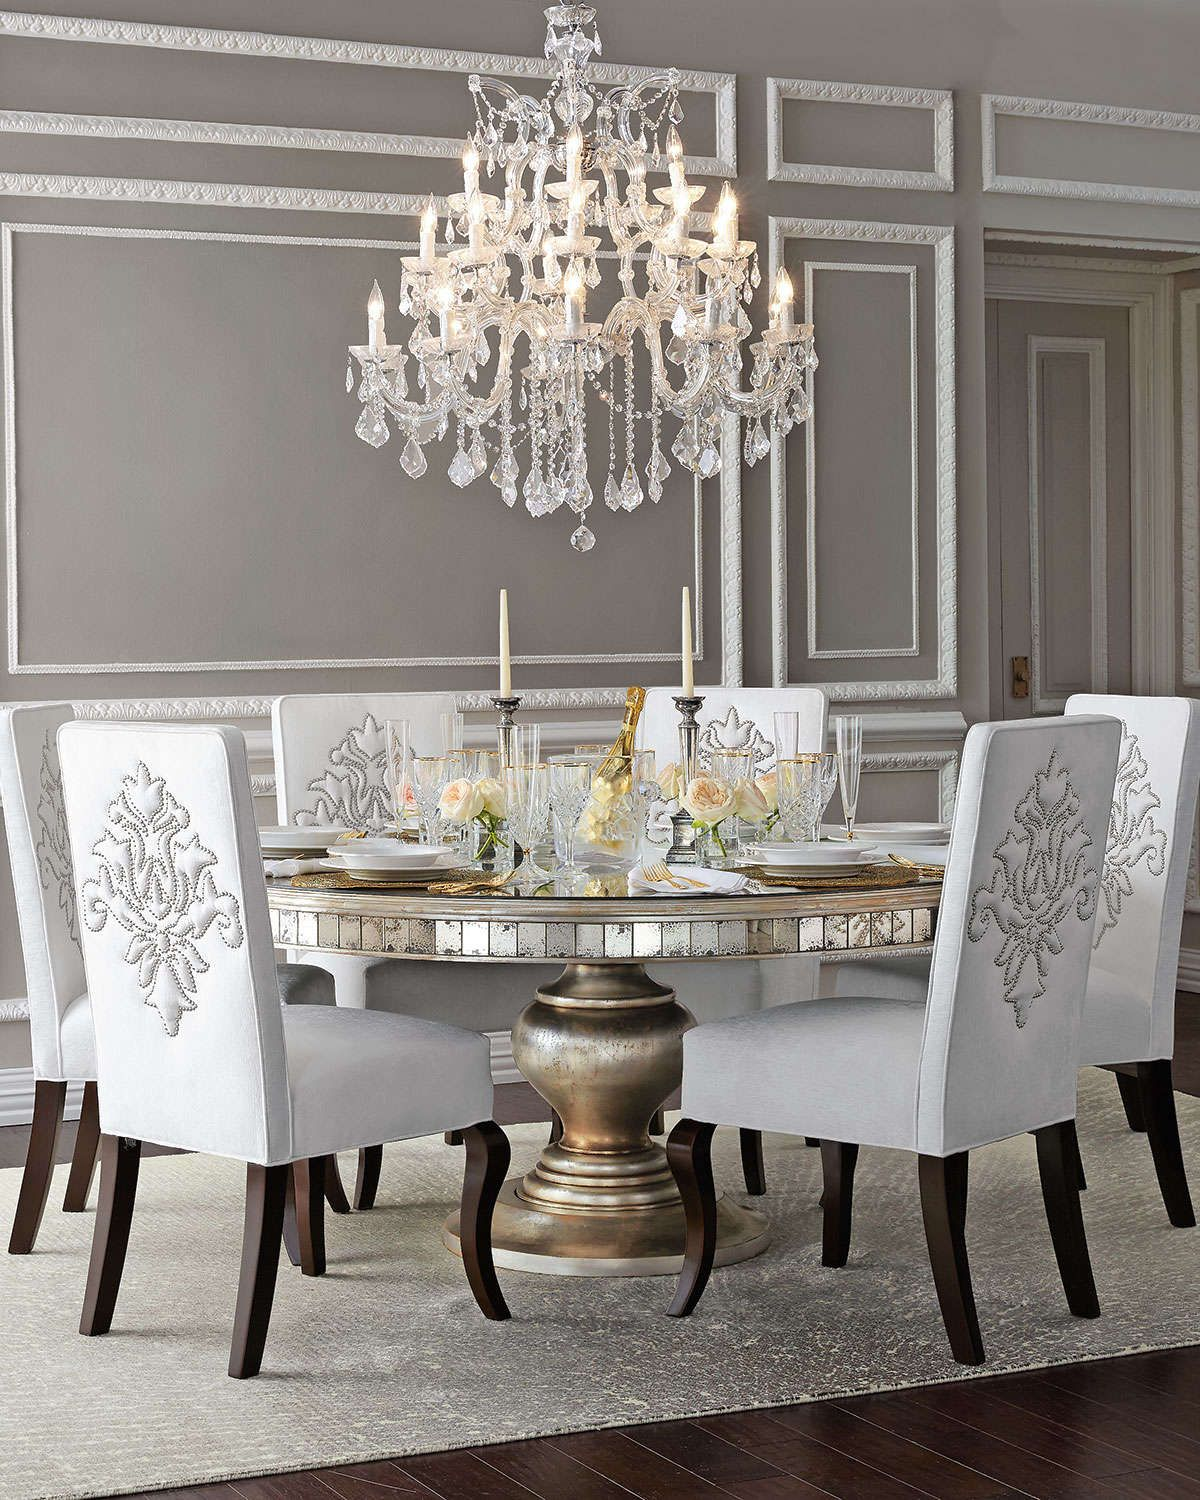 Luxury Dinner Furniture 6 Seater Round Dining Table And Chair Set For Dining Room View Wooden Dining Table With Glass Top Designs Oe Fashion Product Details F Dining Room Furniture Sets Luxury